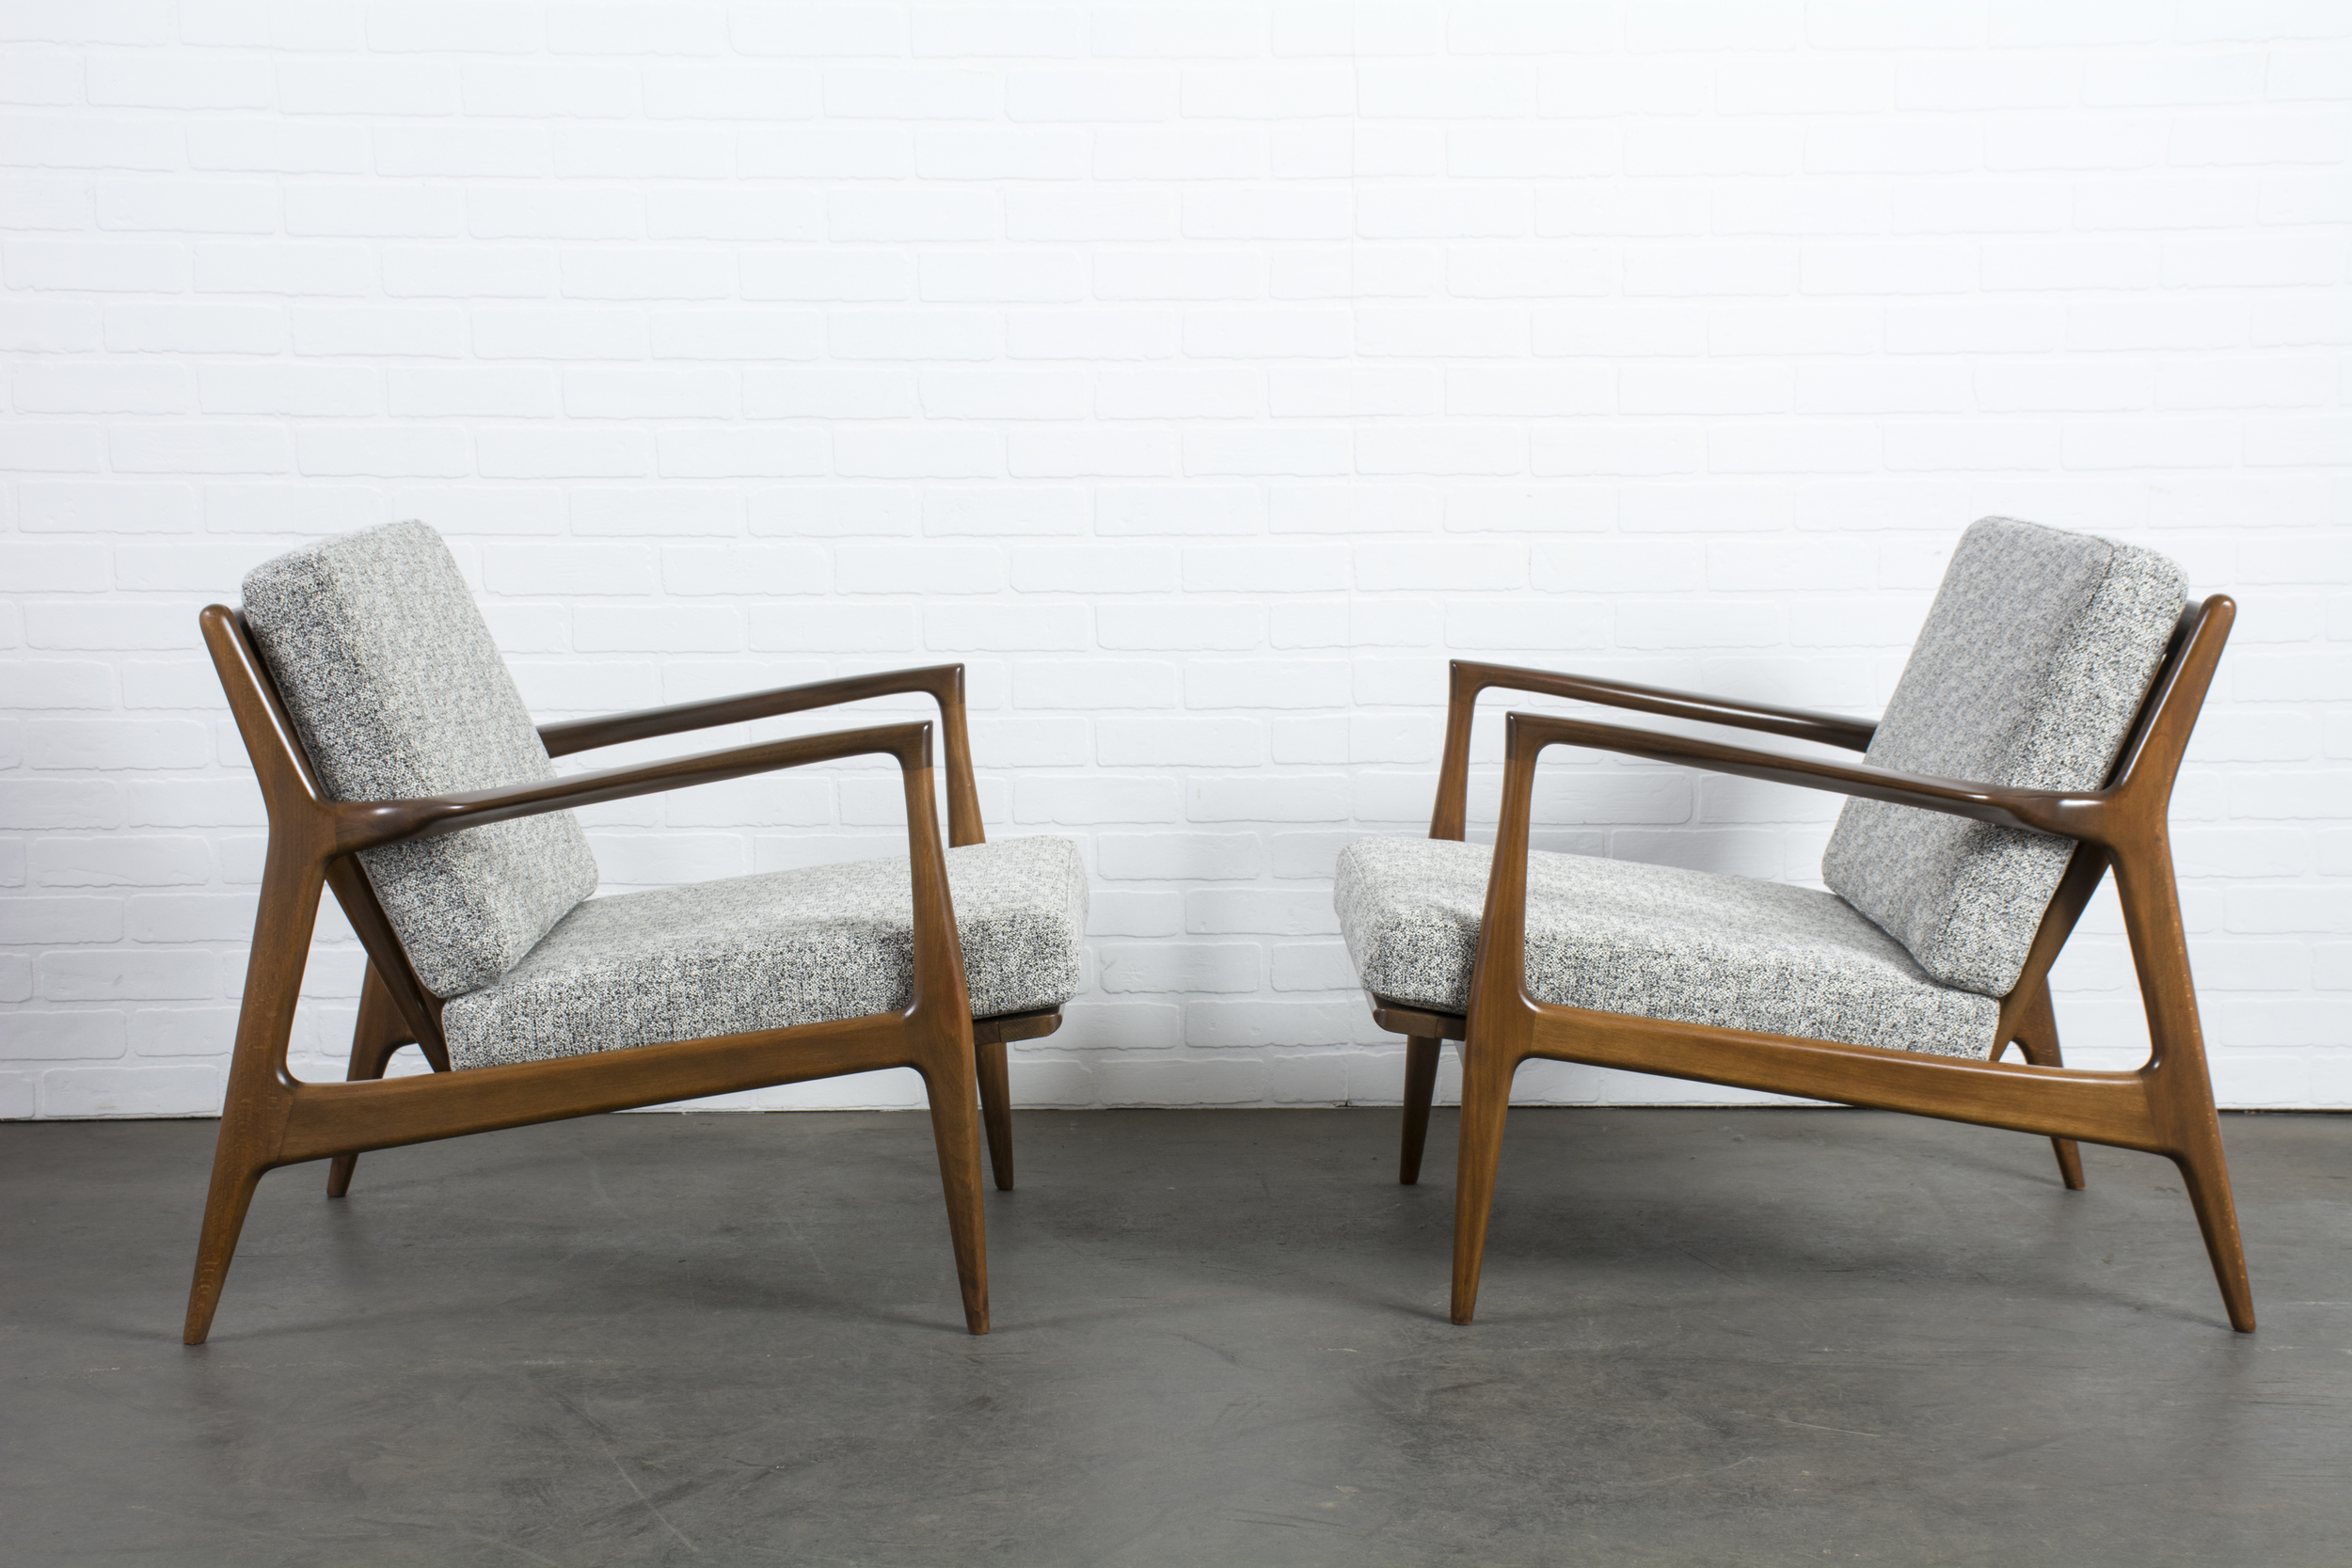 Pair of Danish Modern Lounge Chairs by Ib Kofod-Larsen